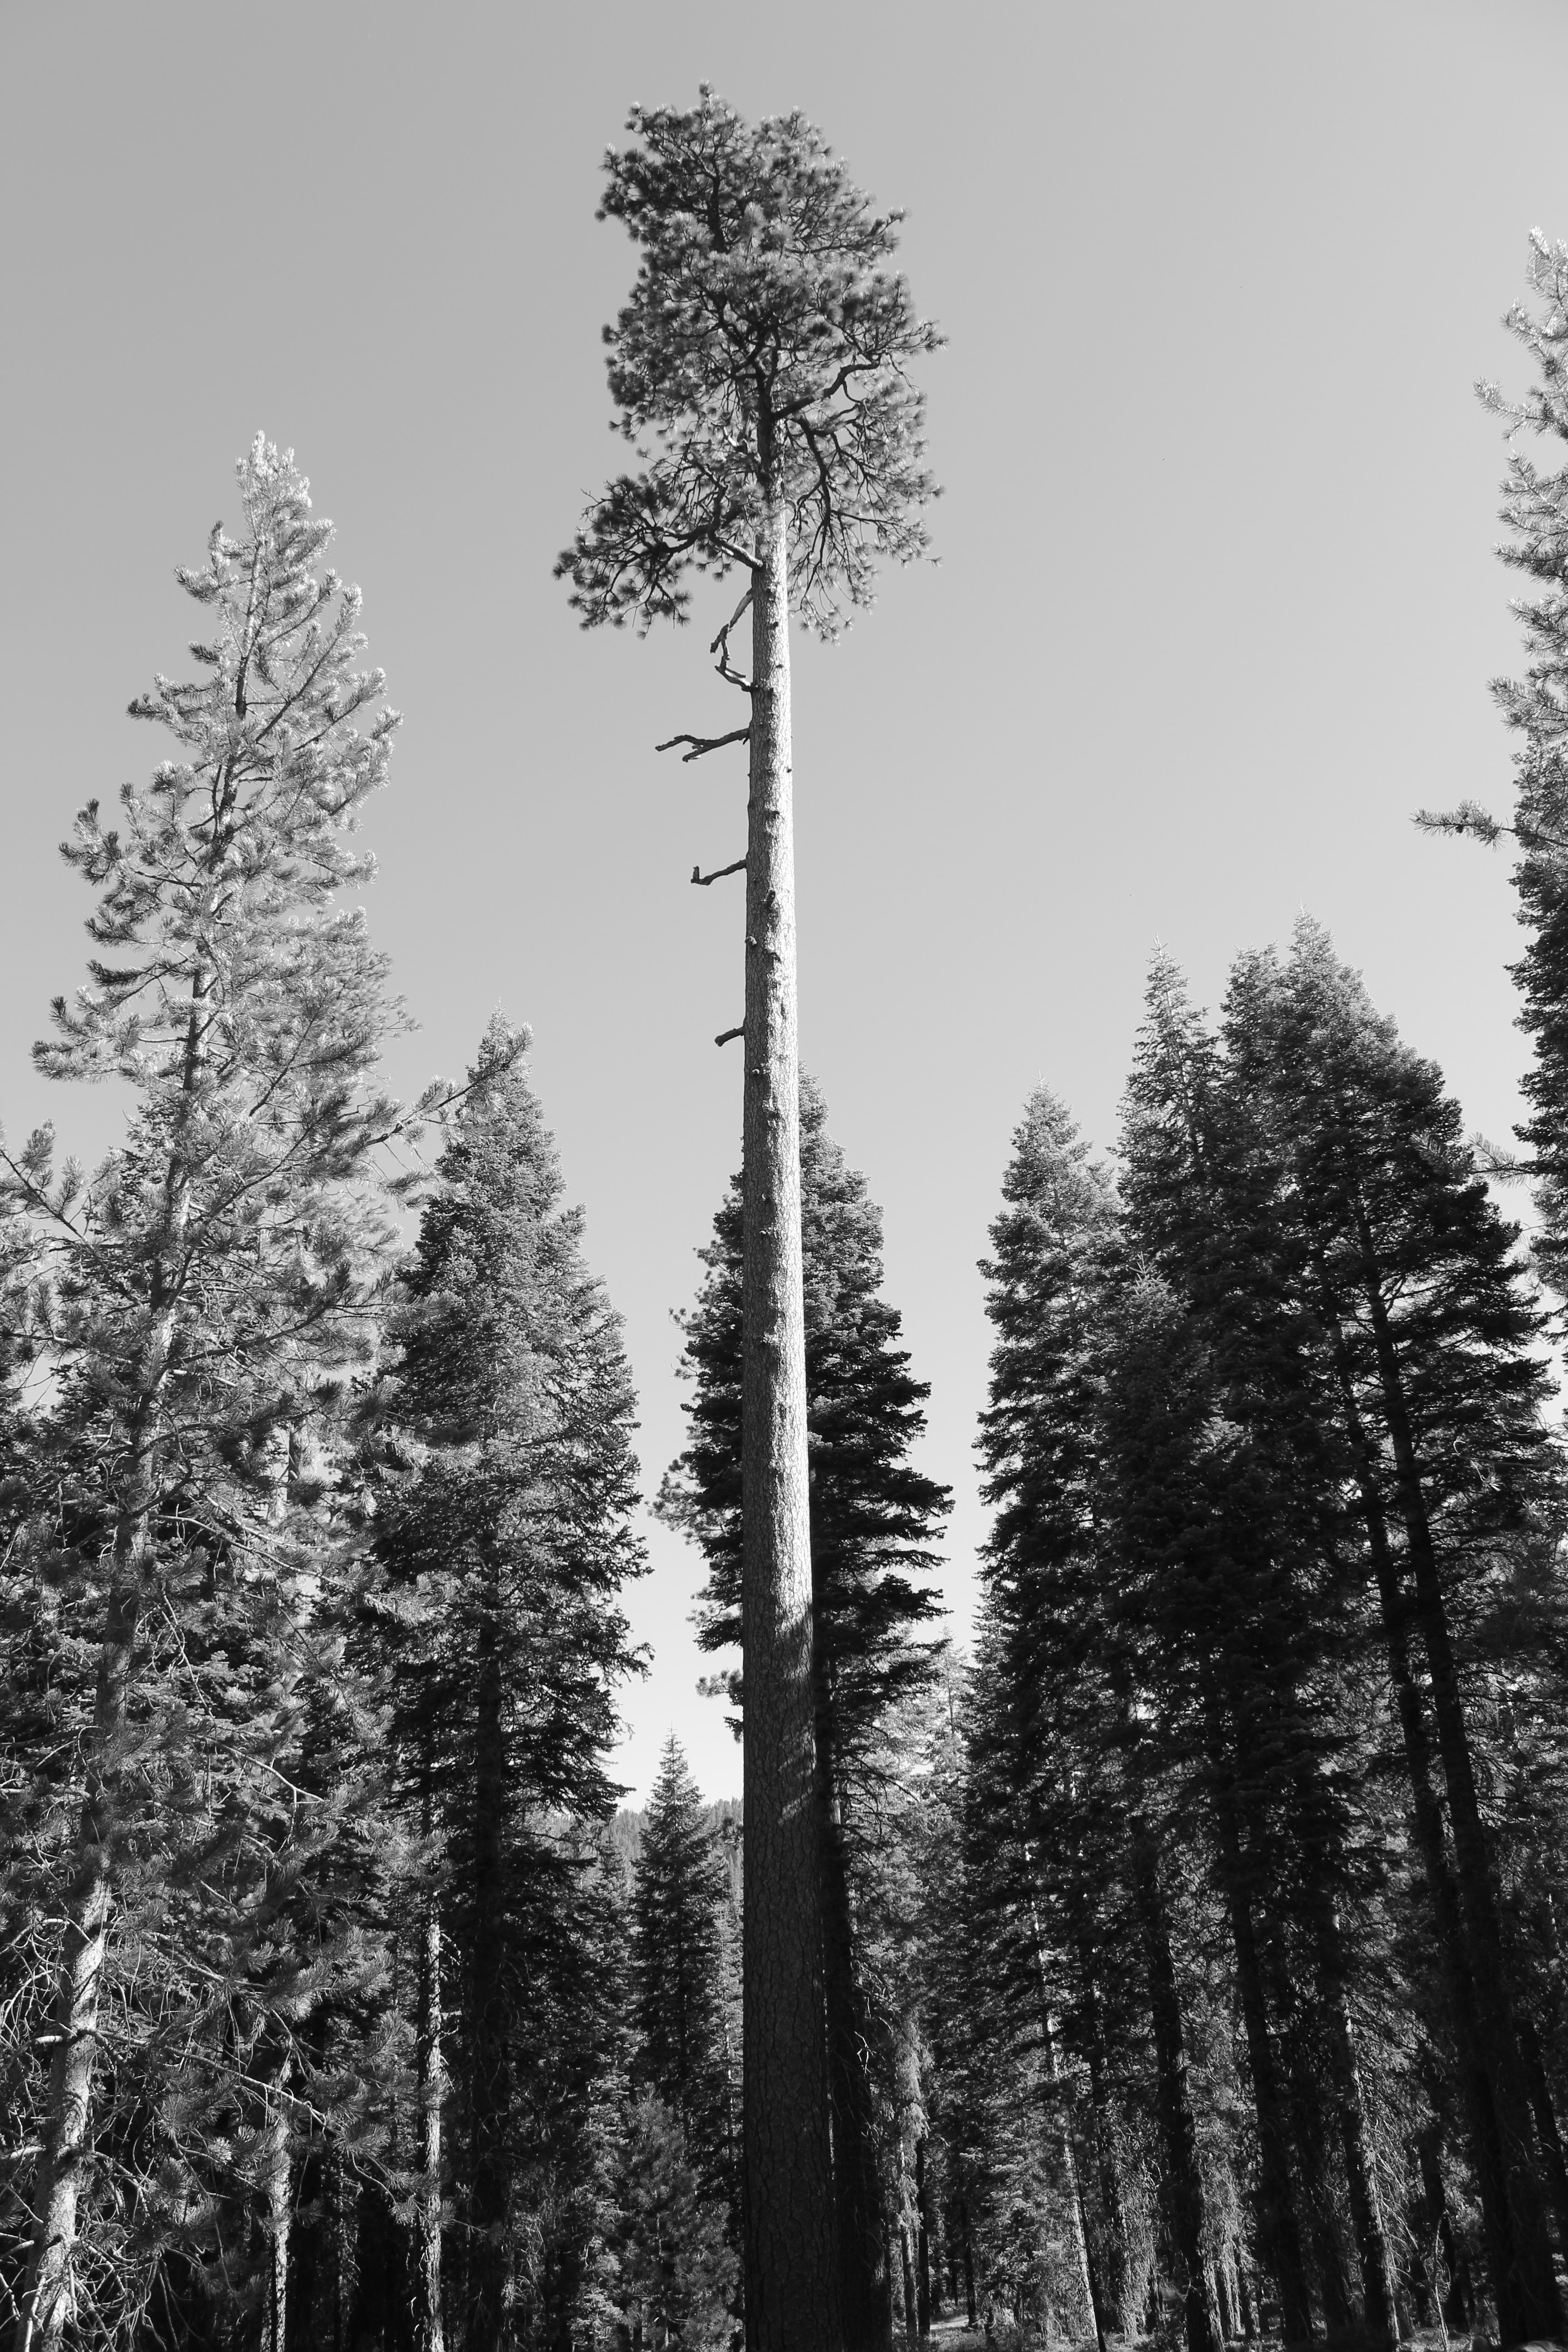 A black and white shot of tall pine trees